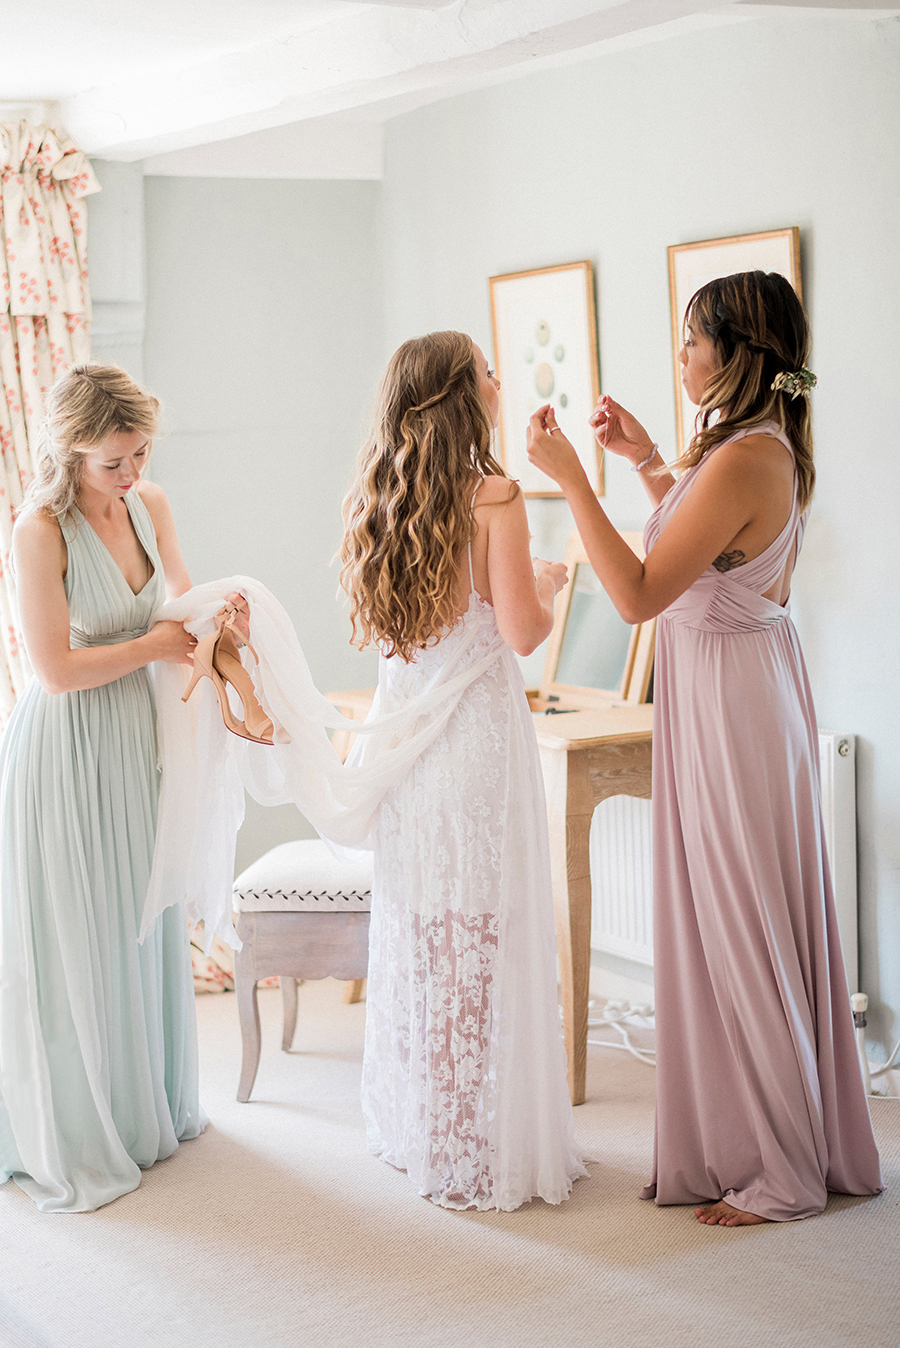 Dreamy boho wedding at Houchins Farm with images by Kathryn Hopkins Photography (4)